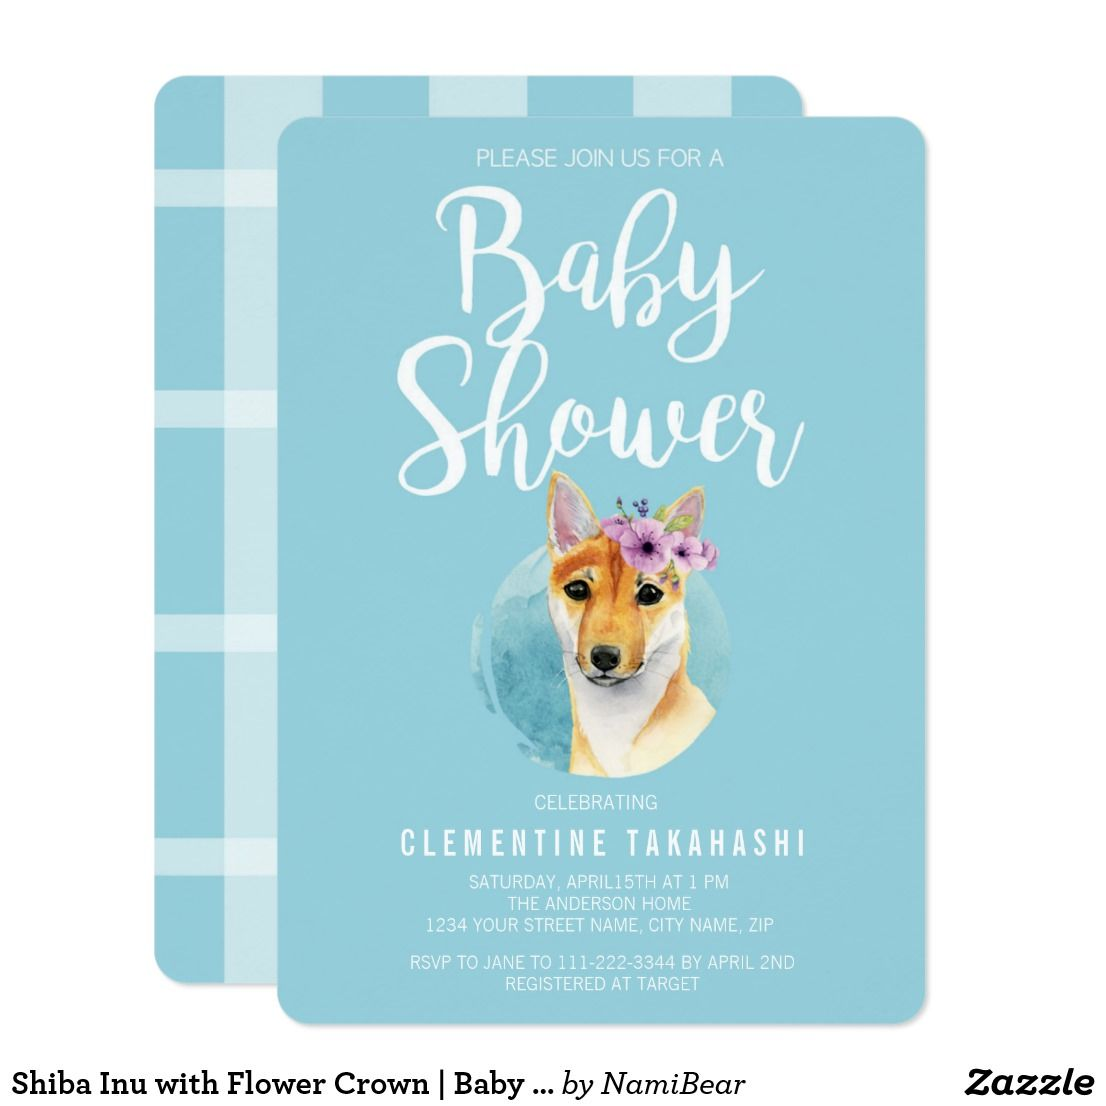 Shiba Inu with Flower Crown | Baby Shower Blue Card Adorable baby ...